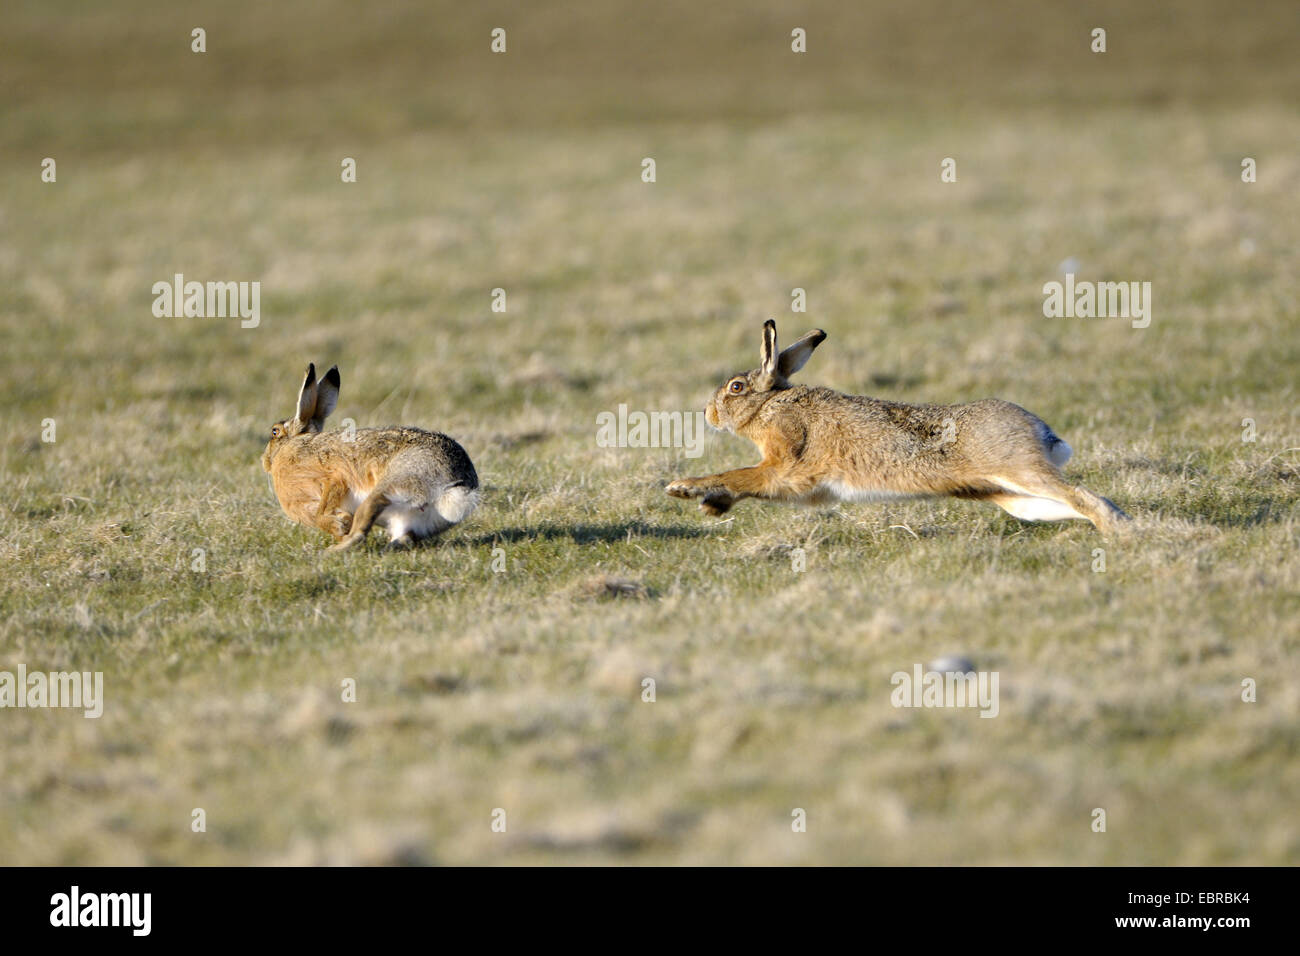 European hare, Brown hare (Lepus europaeus), adult animals chasing each other during the pairing time, Netherlands, - Stock Image